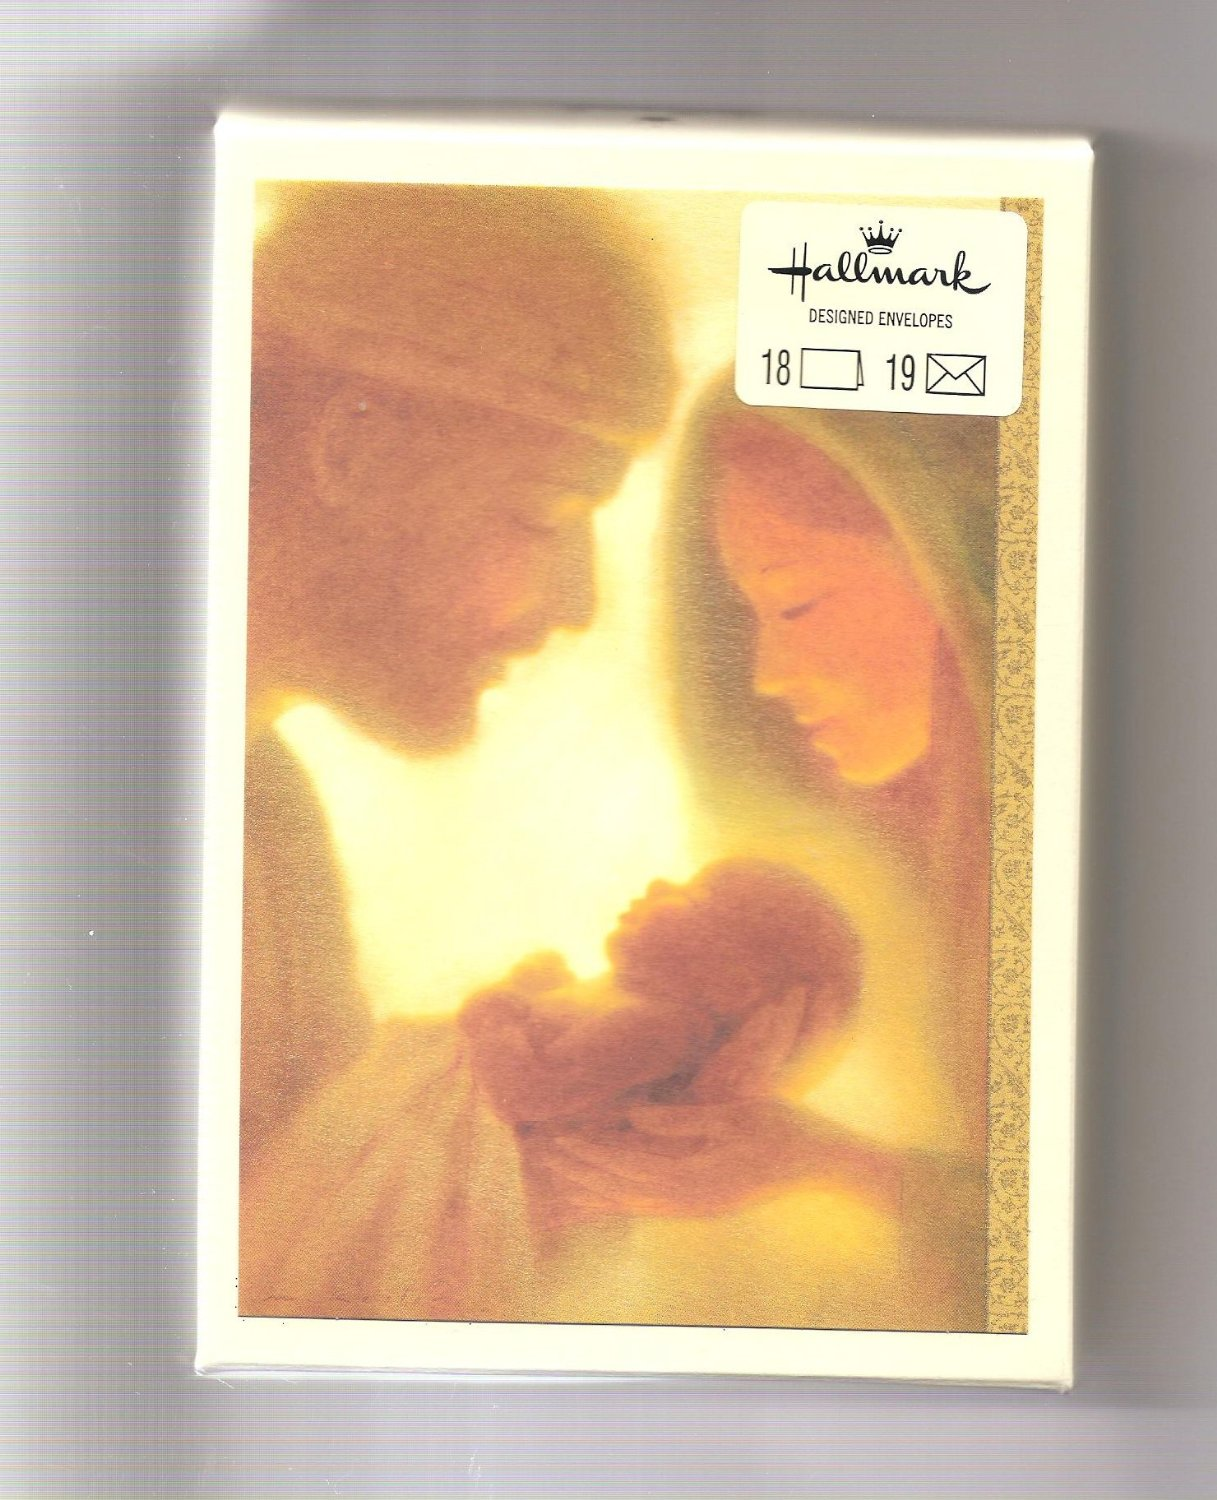 Hallmark Boxed Christmas Cards - God\'s Infinite Love PX6479 ...